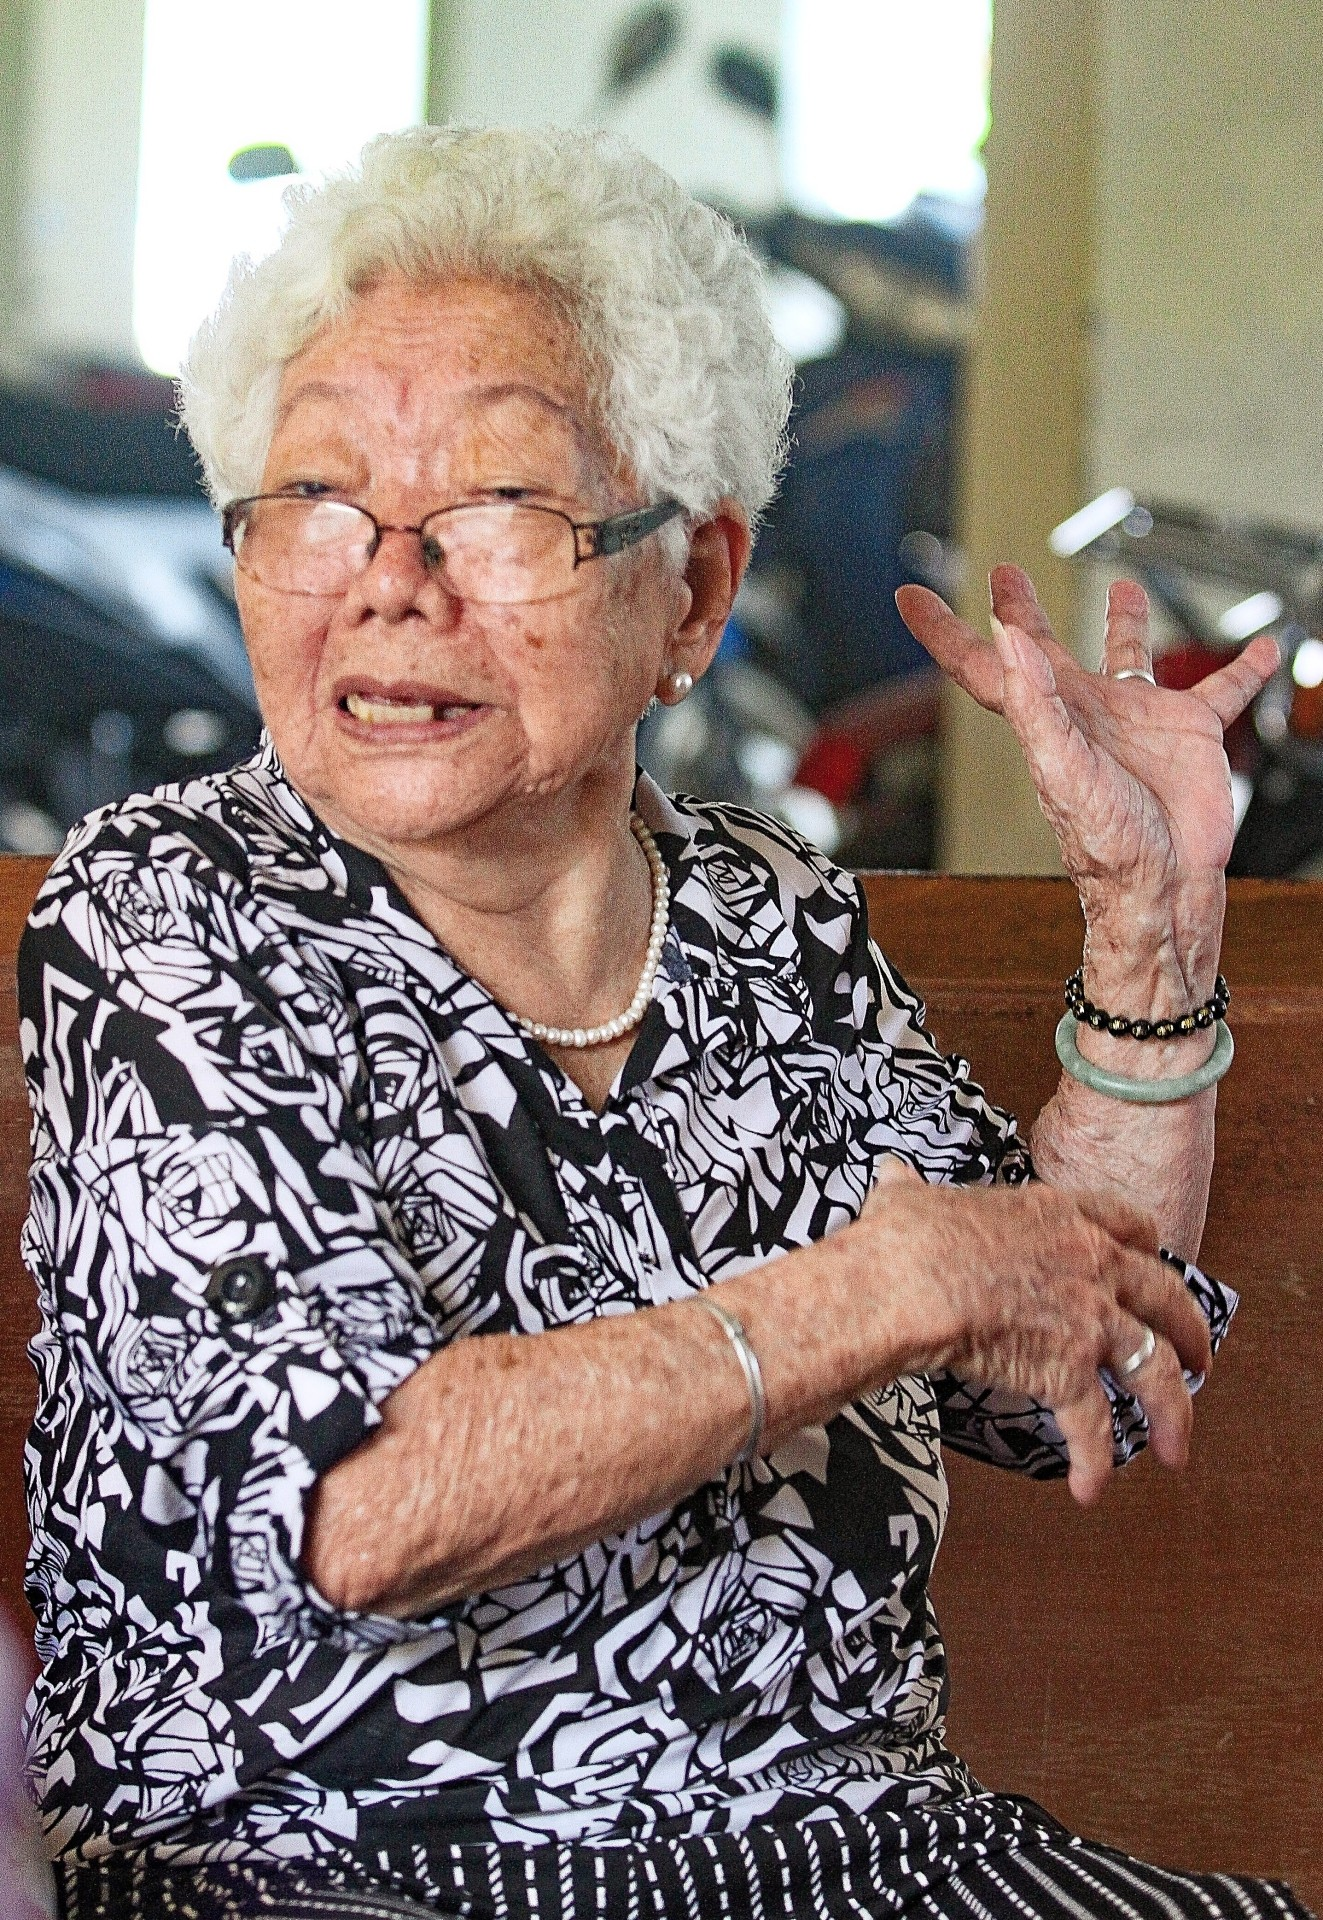 Liew used to walk to Kepong Metropolitan Park 3km from her home but stopped doing so after being a victim of snatch theft.